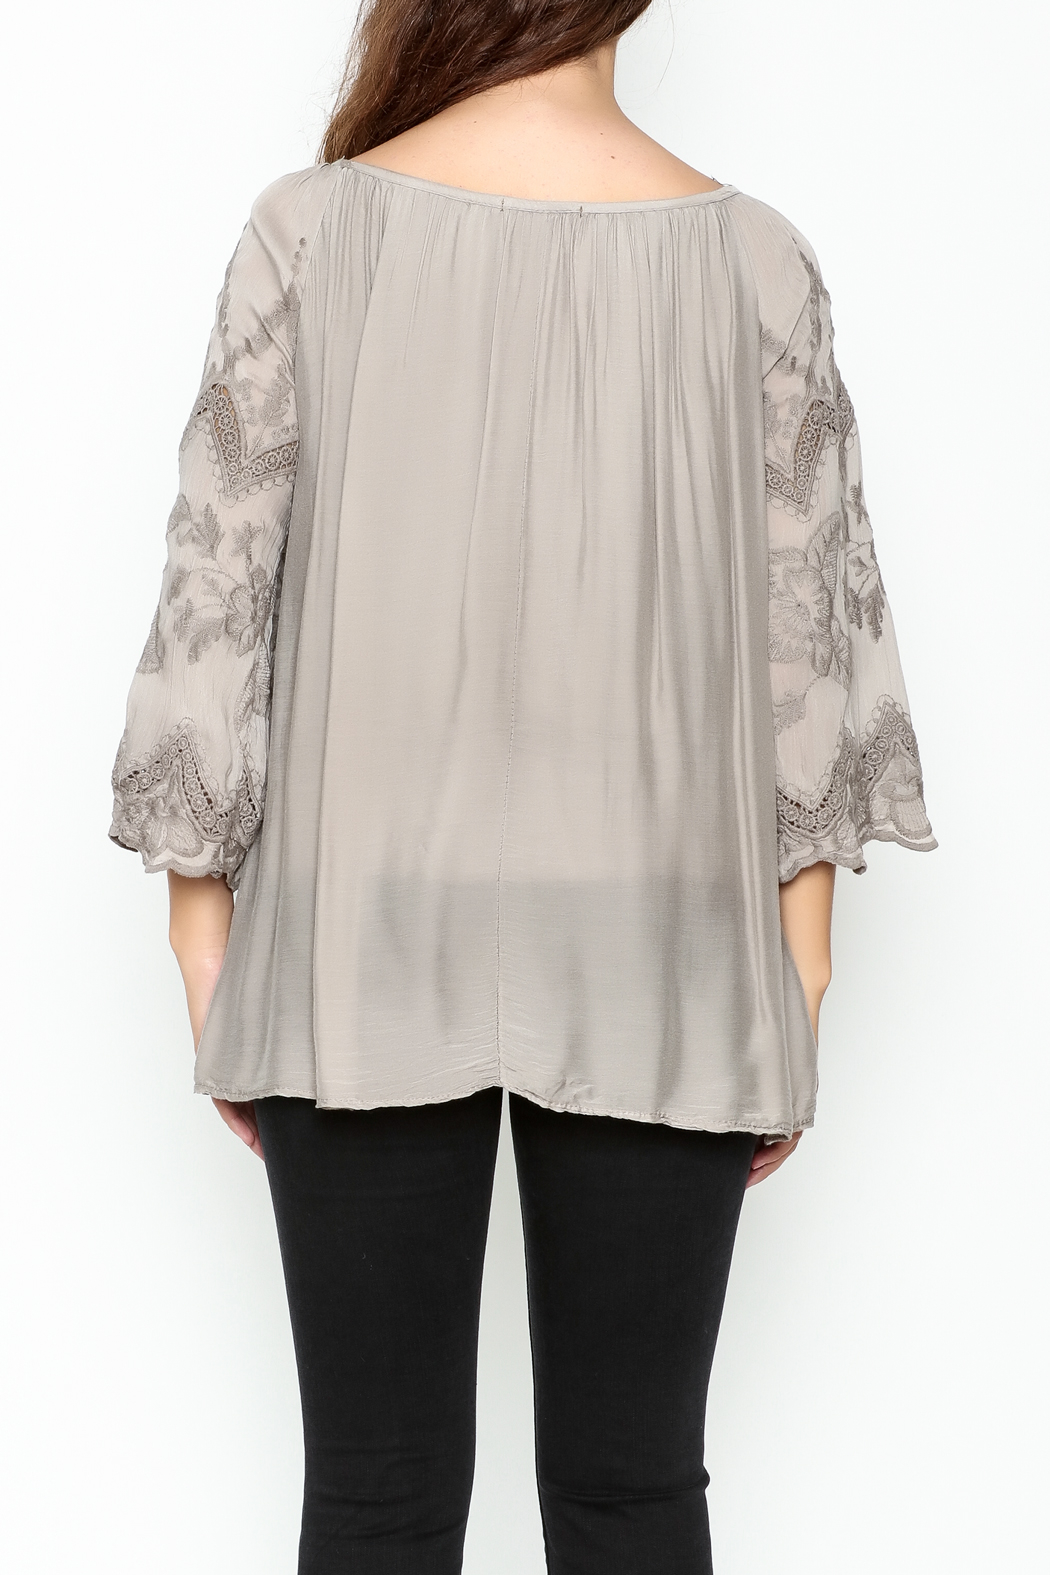 Tempo Paris Embroidered Silk Top - Back Cropped Image